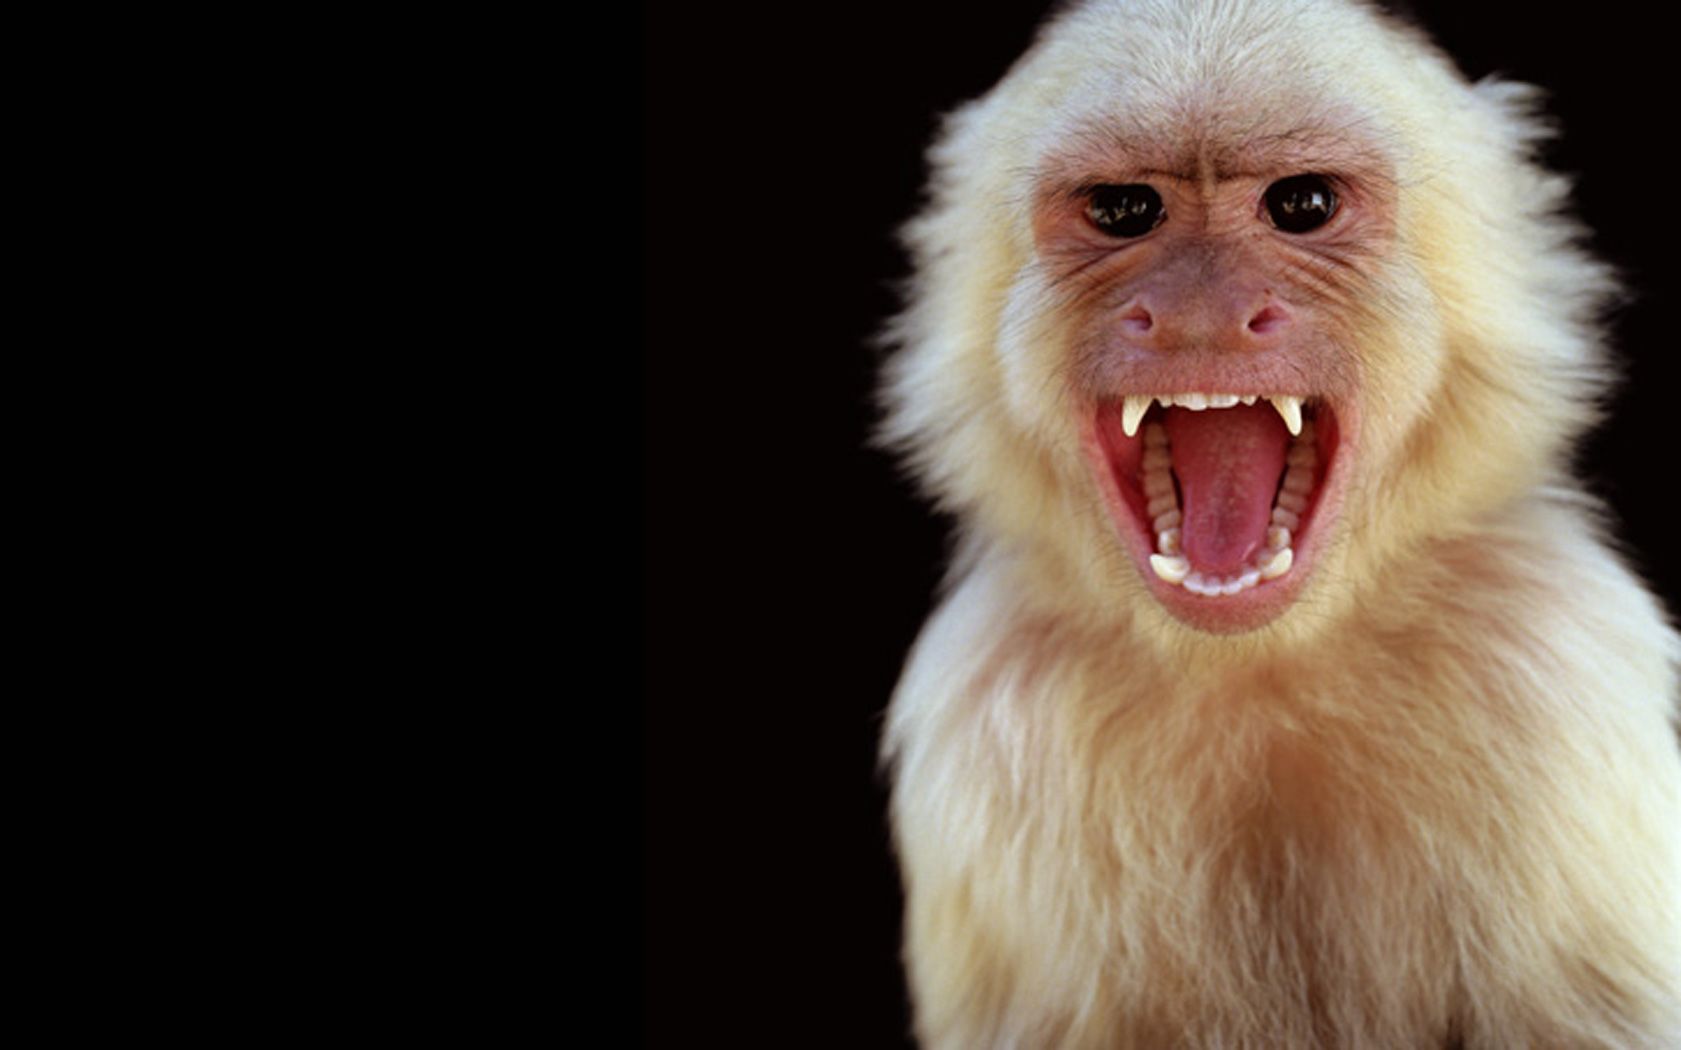 Rupee Capuchin Monkey photo shoot